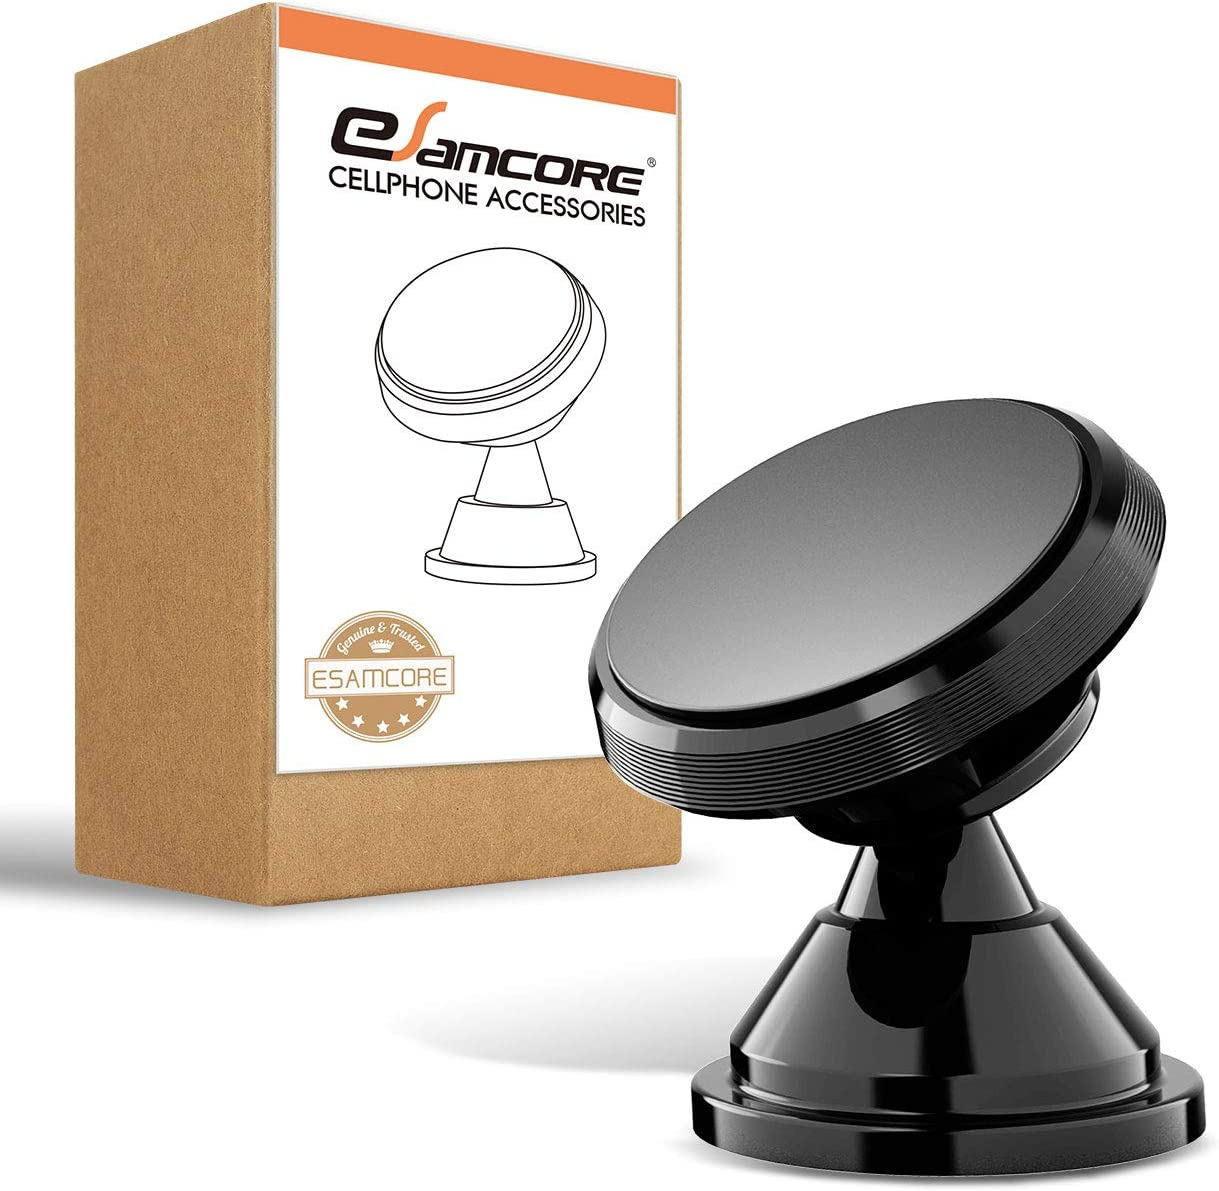 Magnetic Phone Car Mount Fits All iPhone Samsung Galaxy Smartphone 2 Pack eSamcore Powerful Magnets Car Mount Holder for Dashboard with Strong Adhesive